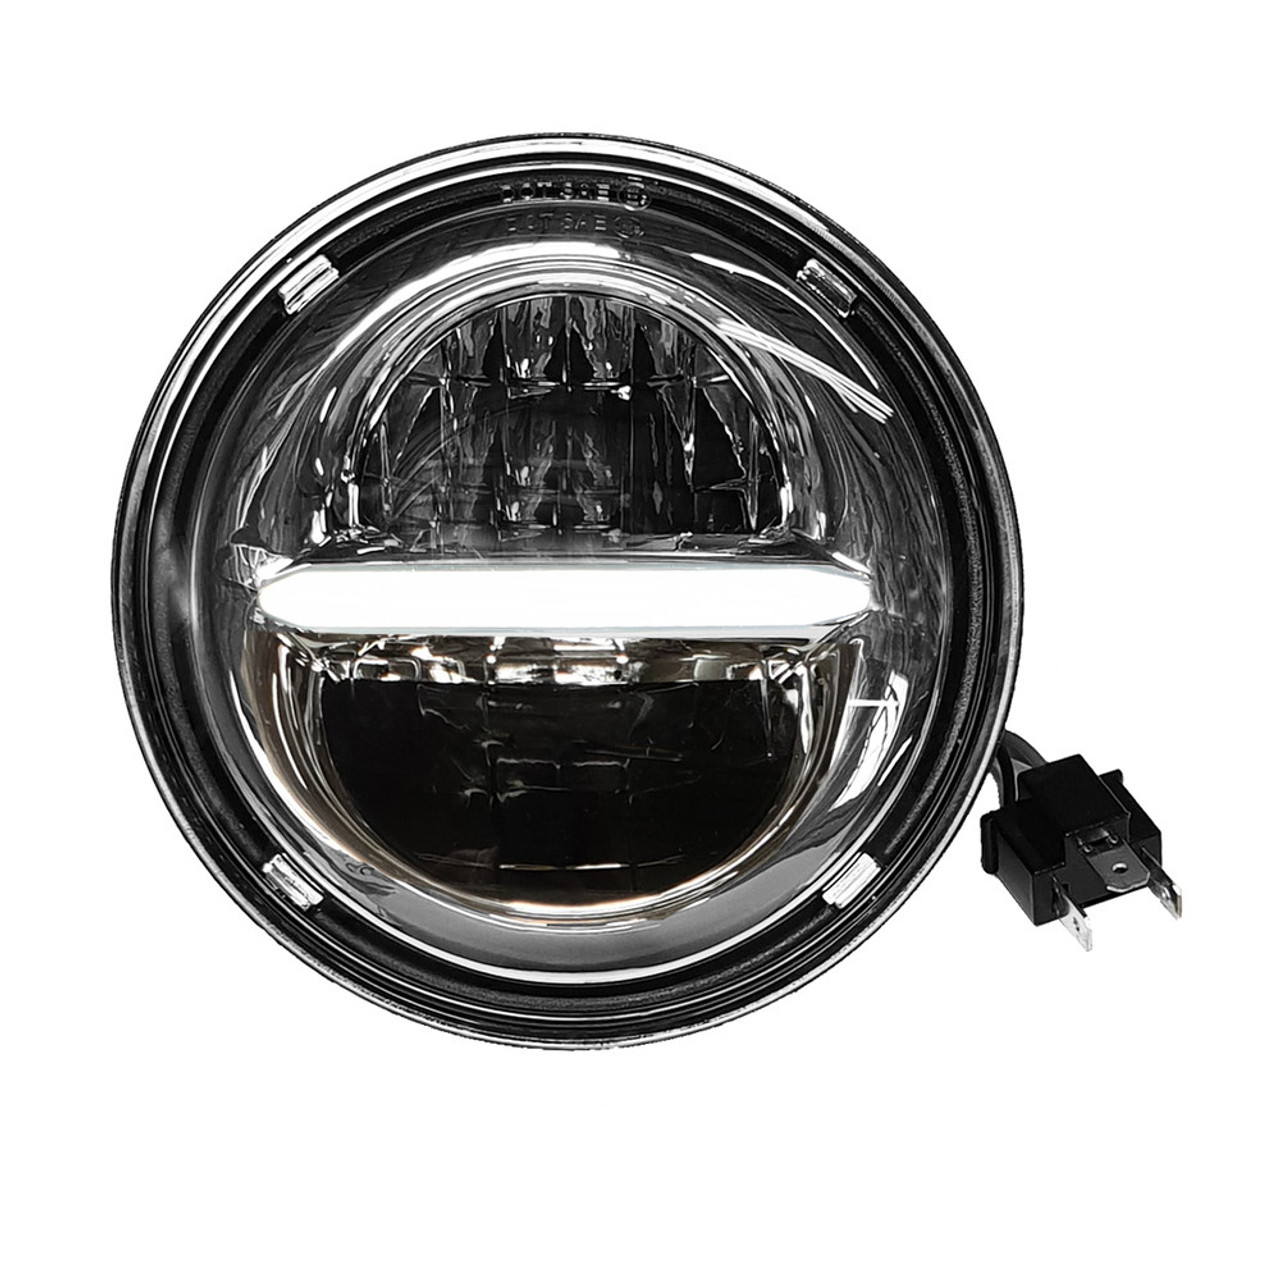 pathfinderled chrome 7 in classic headlight w daytime running lights hd7clc [ 1000 x 1000 Pixel ]